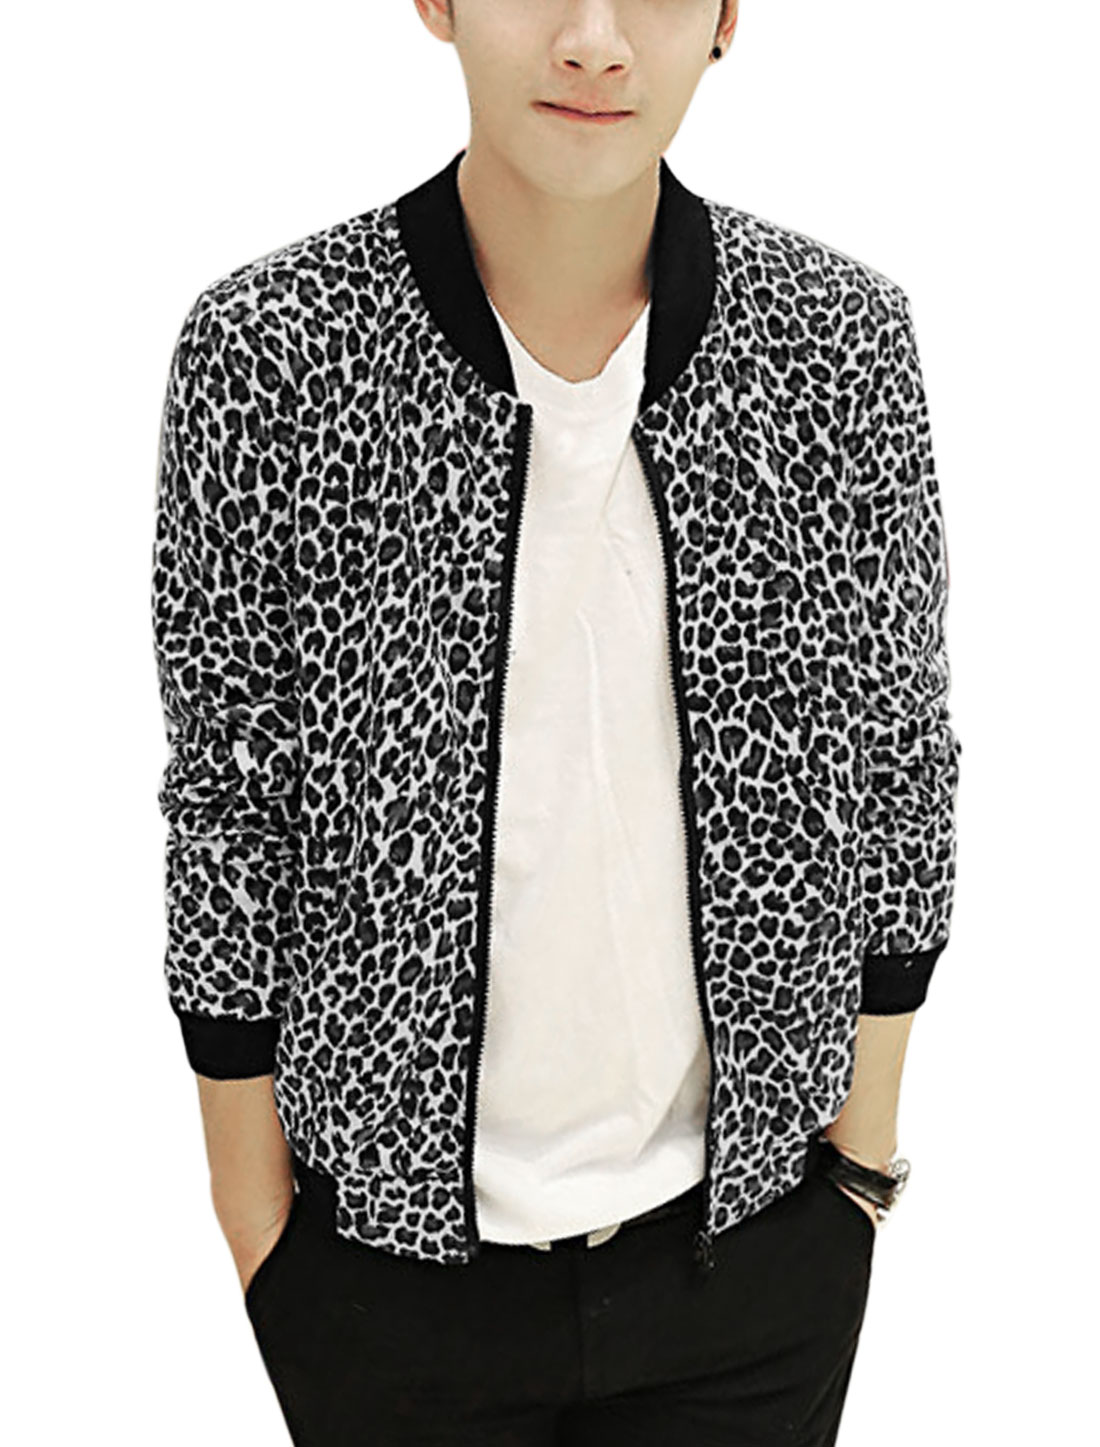 Men Rib Knit Collar Allover Leopard Print Full Zipper Fashion Jacket White Steel Blue S